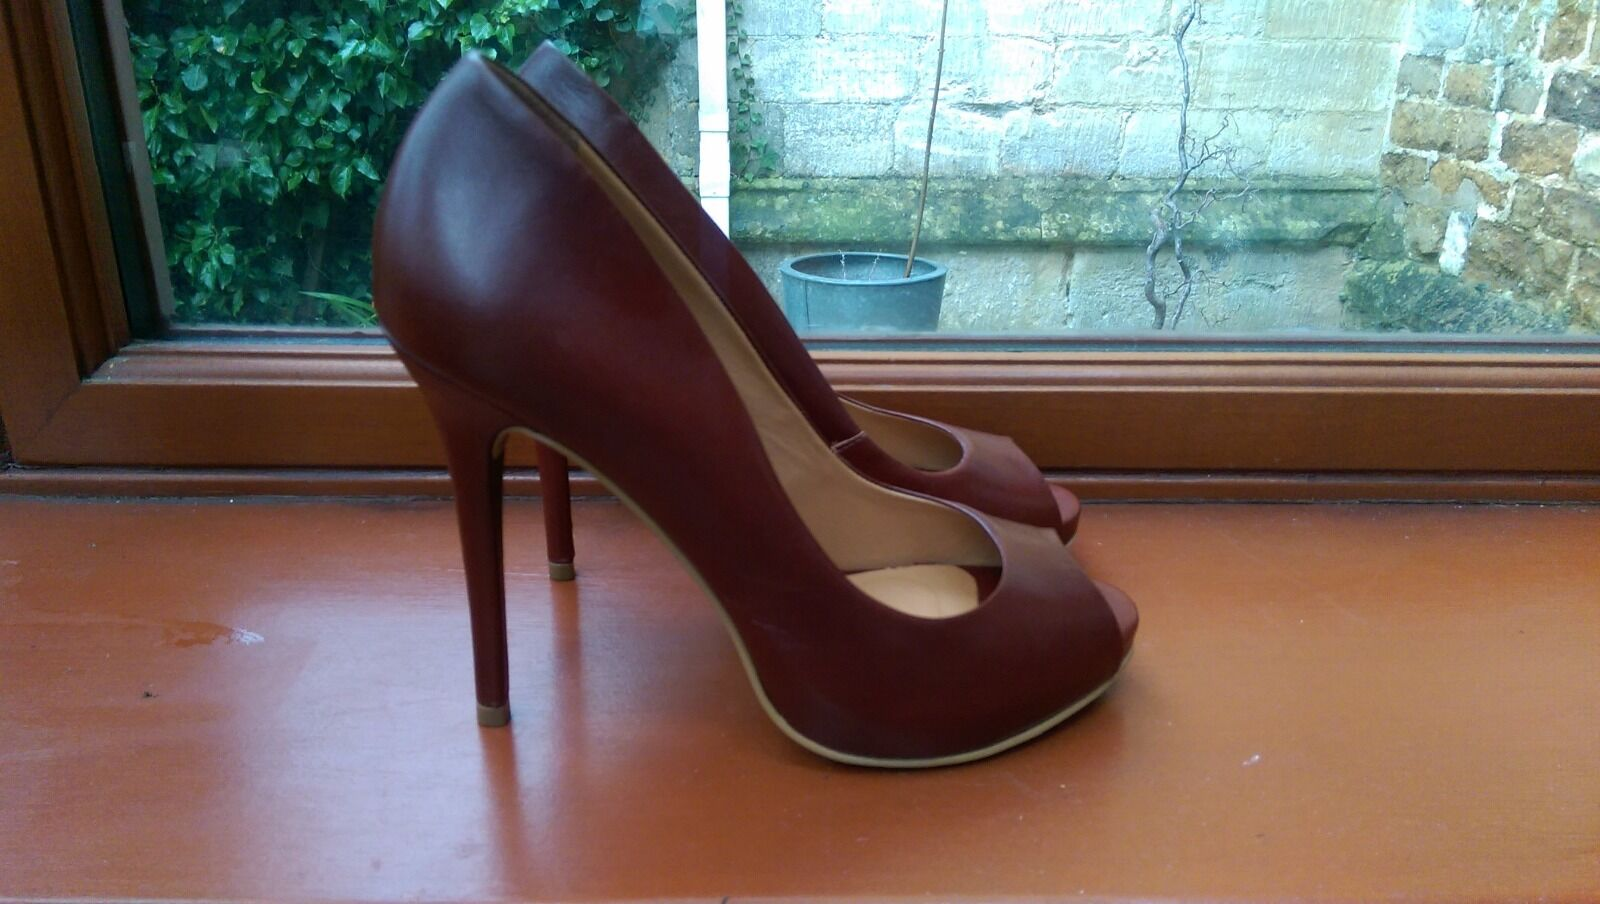 LADIES WEDDING PARTY PROM OFFICE BURGUNDY PEEP TOE LEATHER HIGH HEELS Größe 4.5